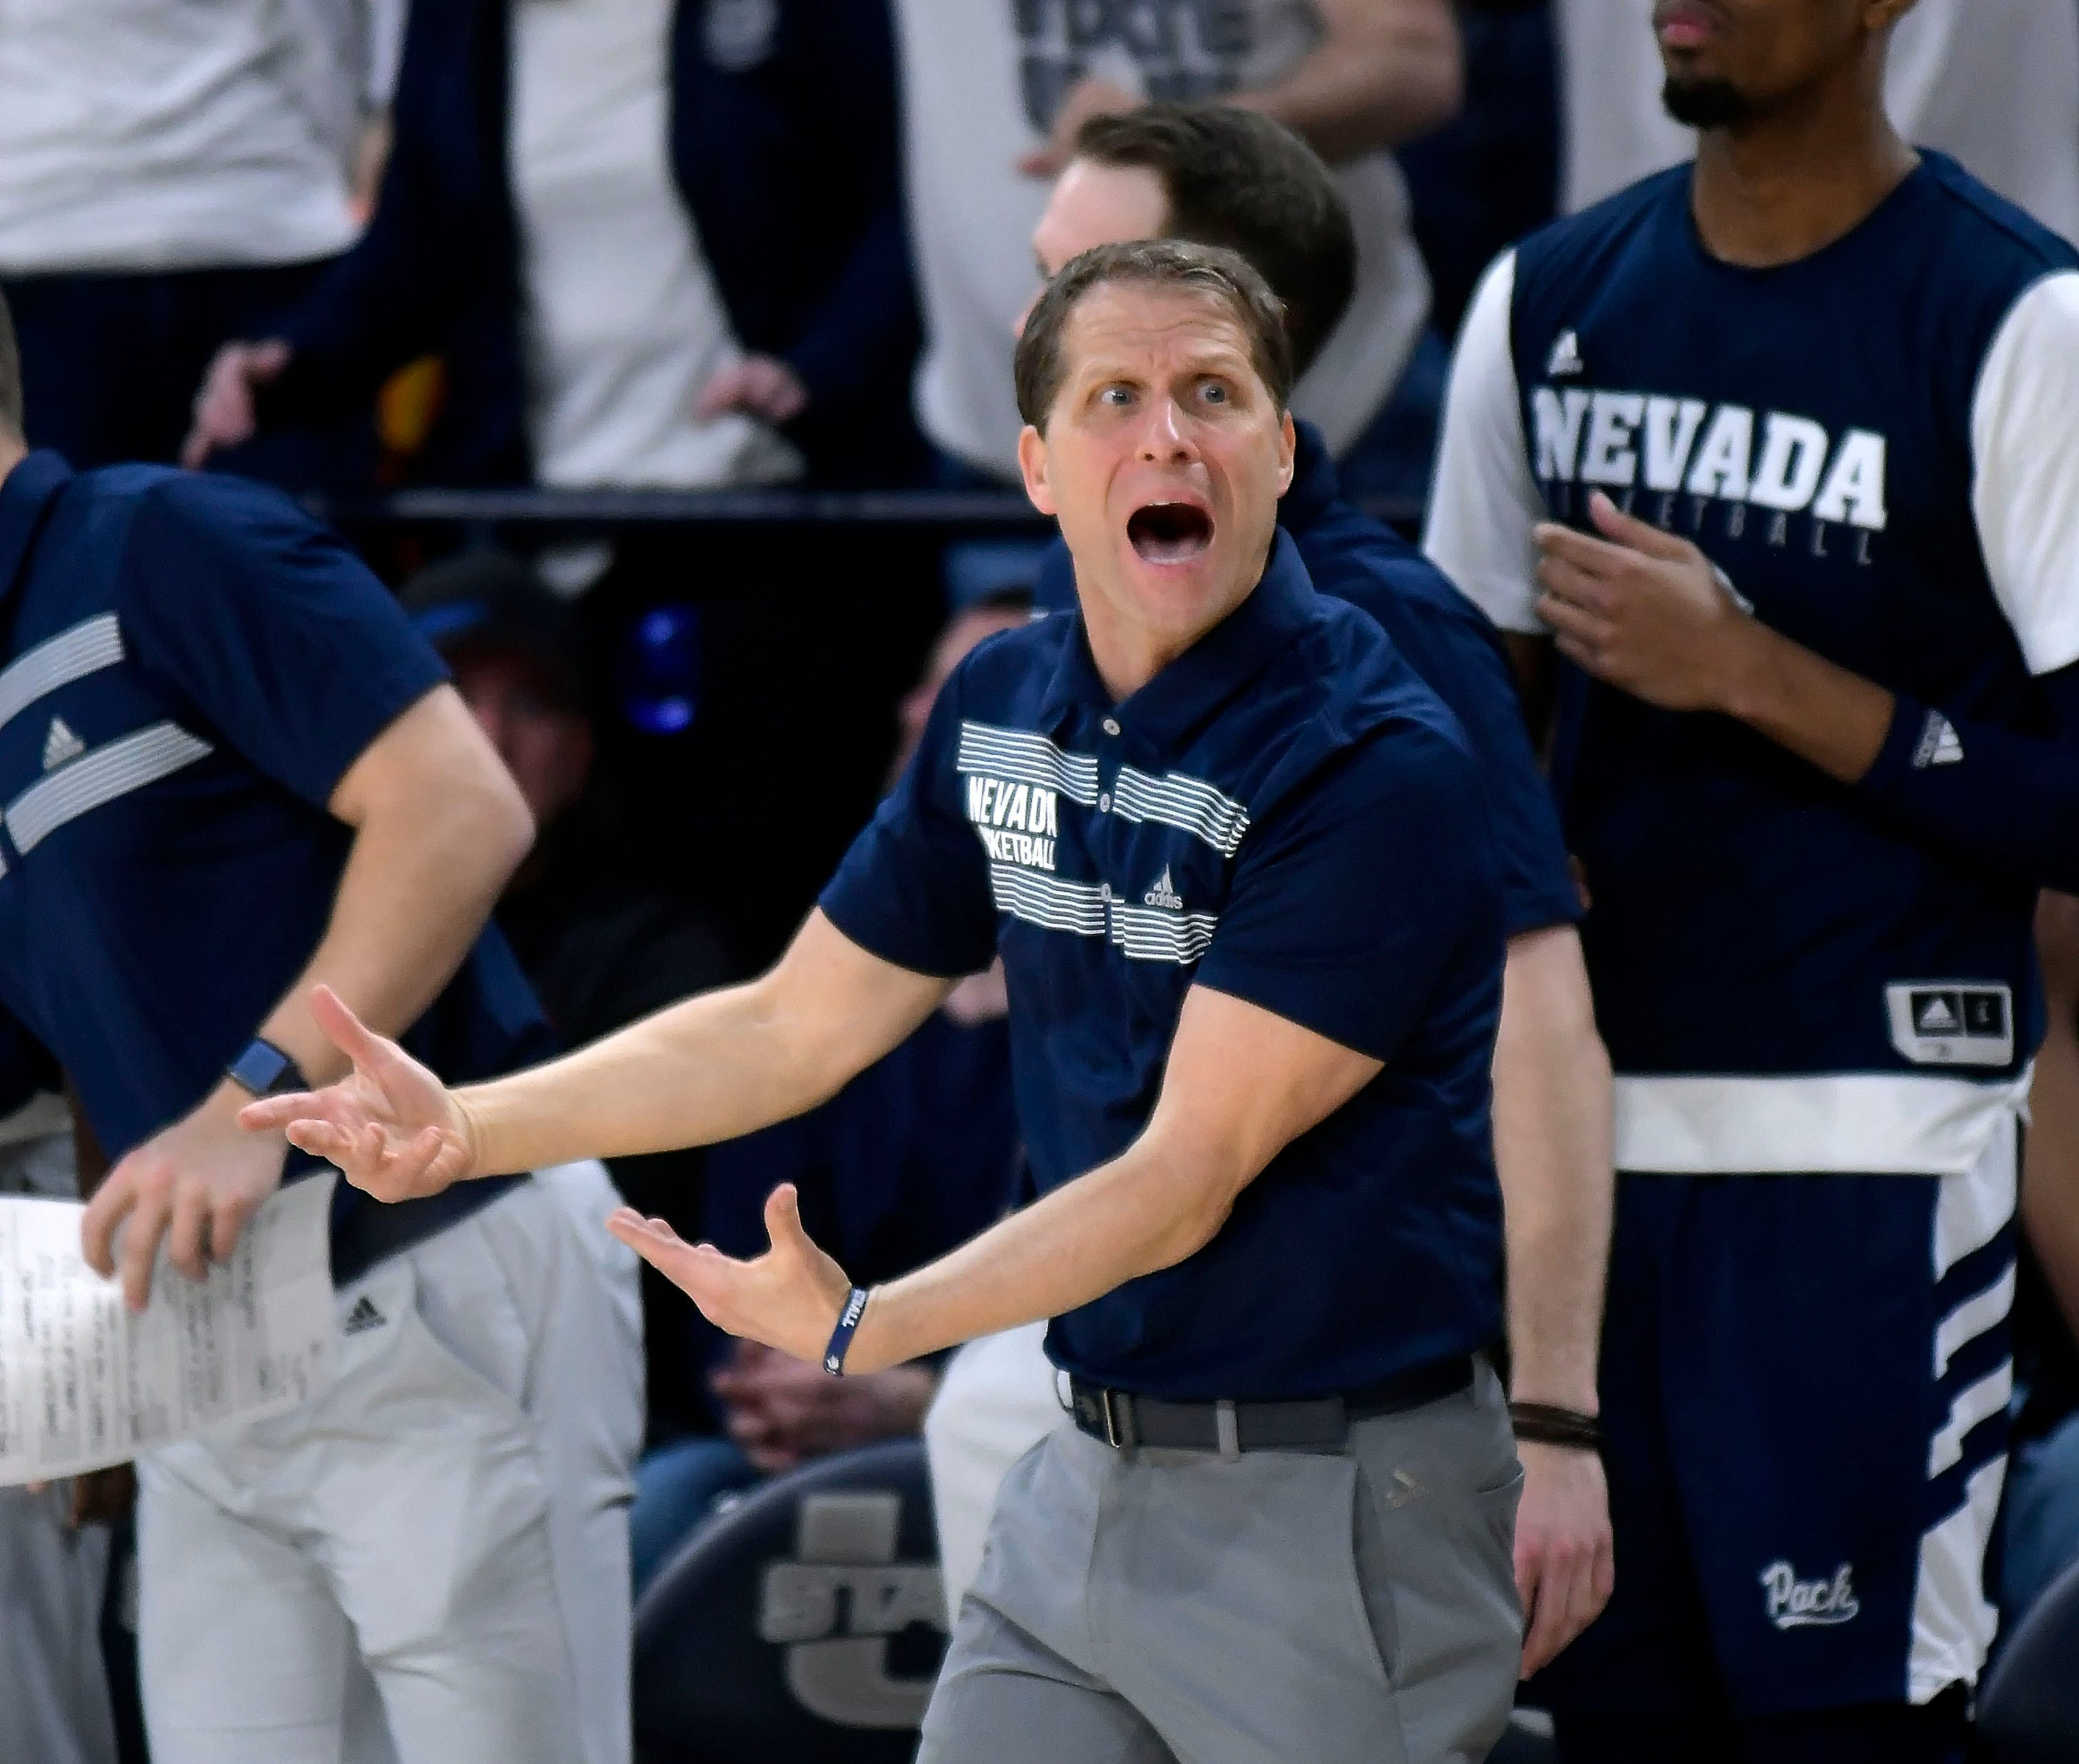 Utah State's upset of Nevada leads to profanity-laced incident after game